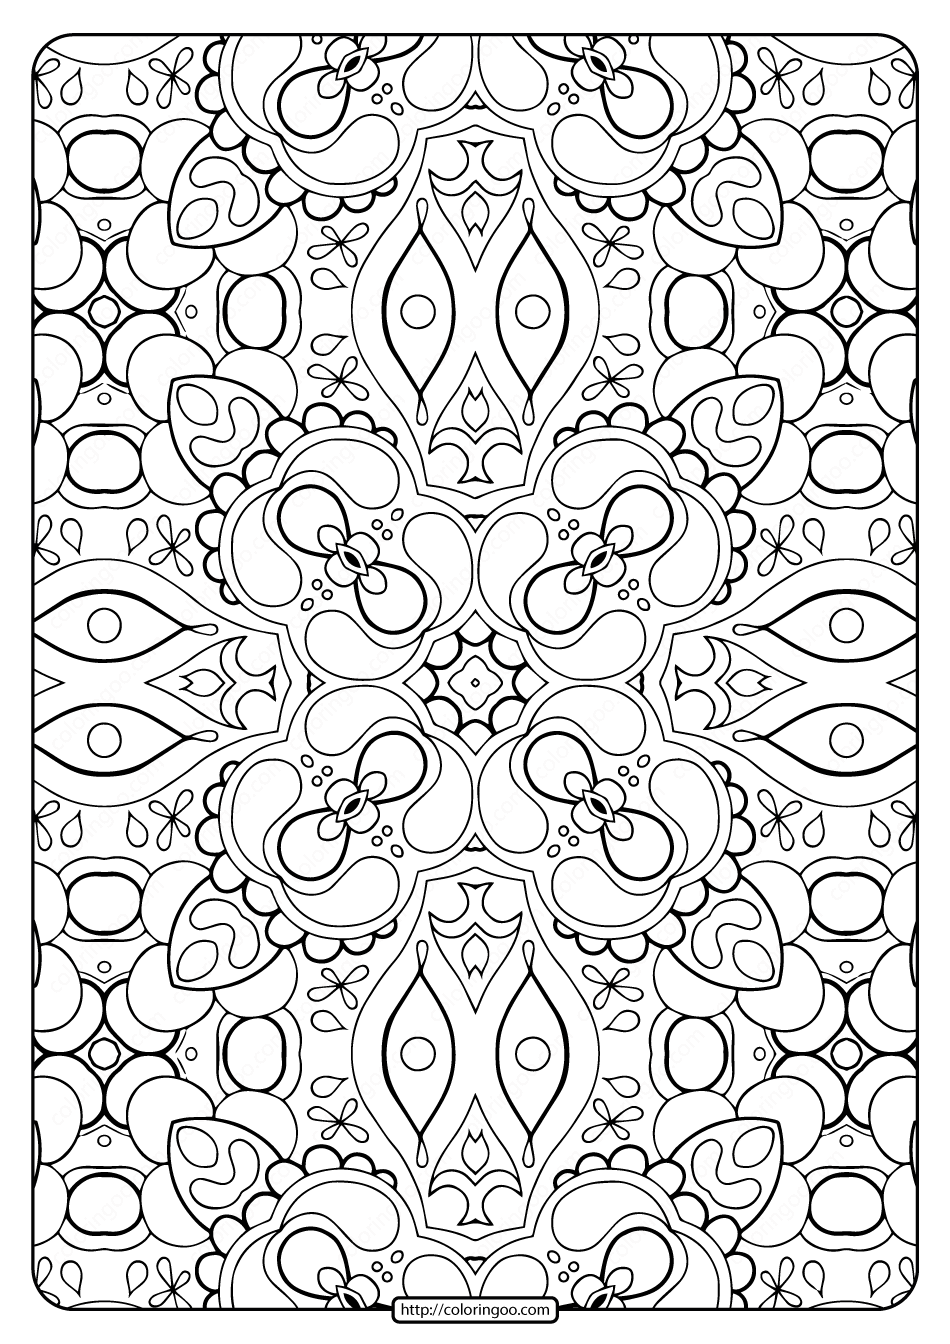 abstract coloring pages to print printable abstract pattern adult coloring pages 01 abstract print coloring to pages